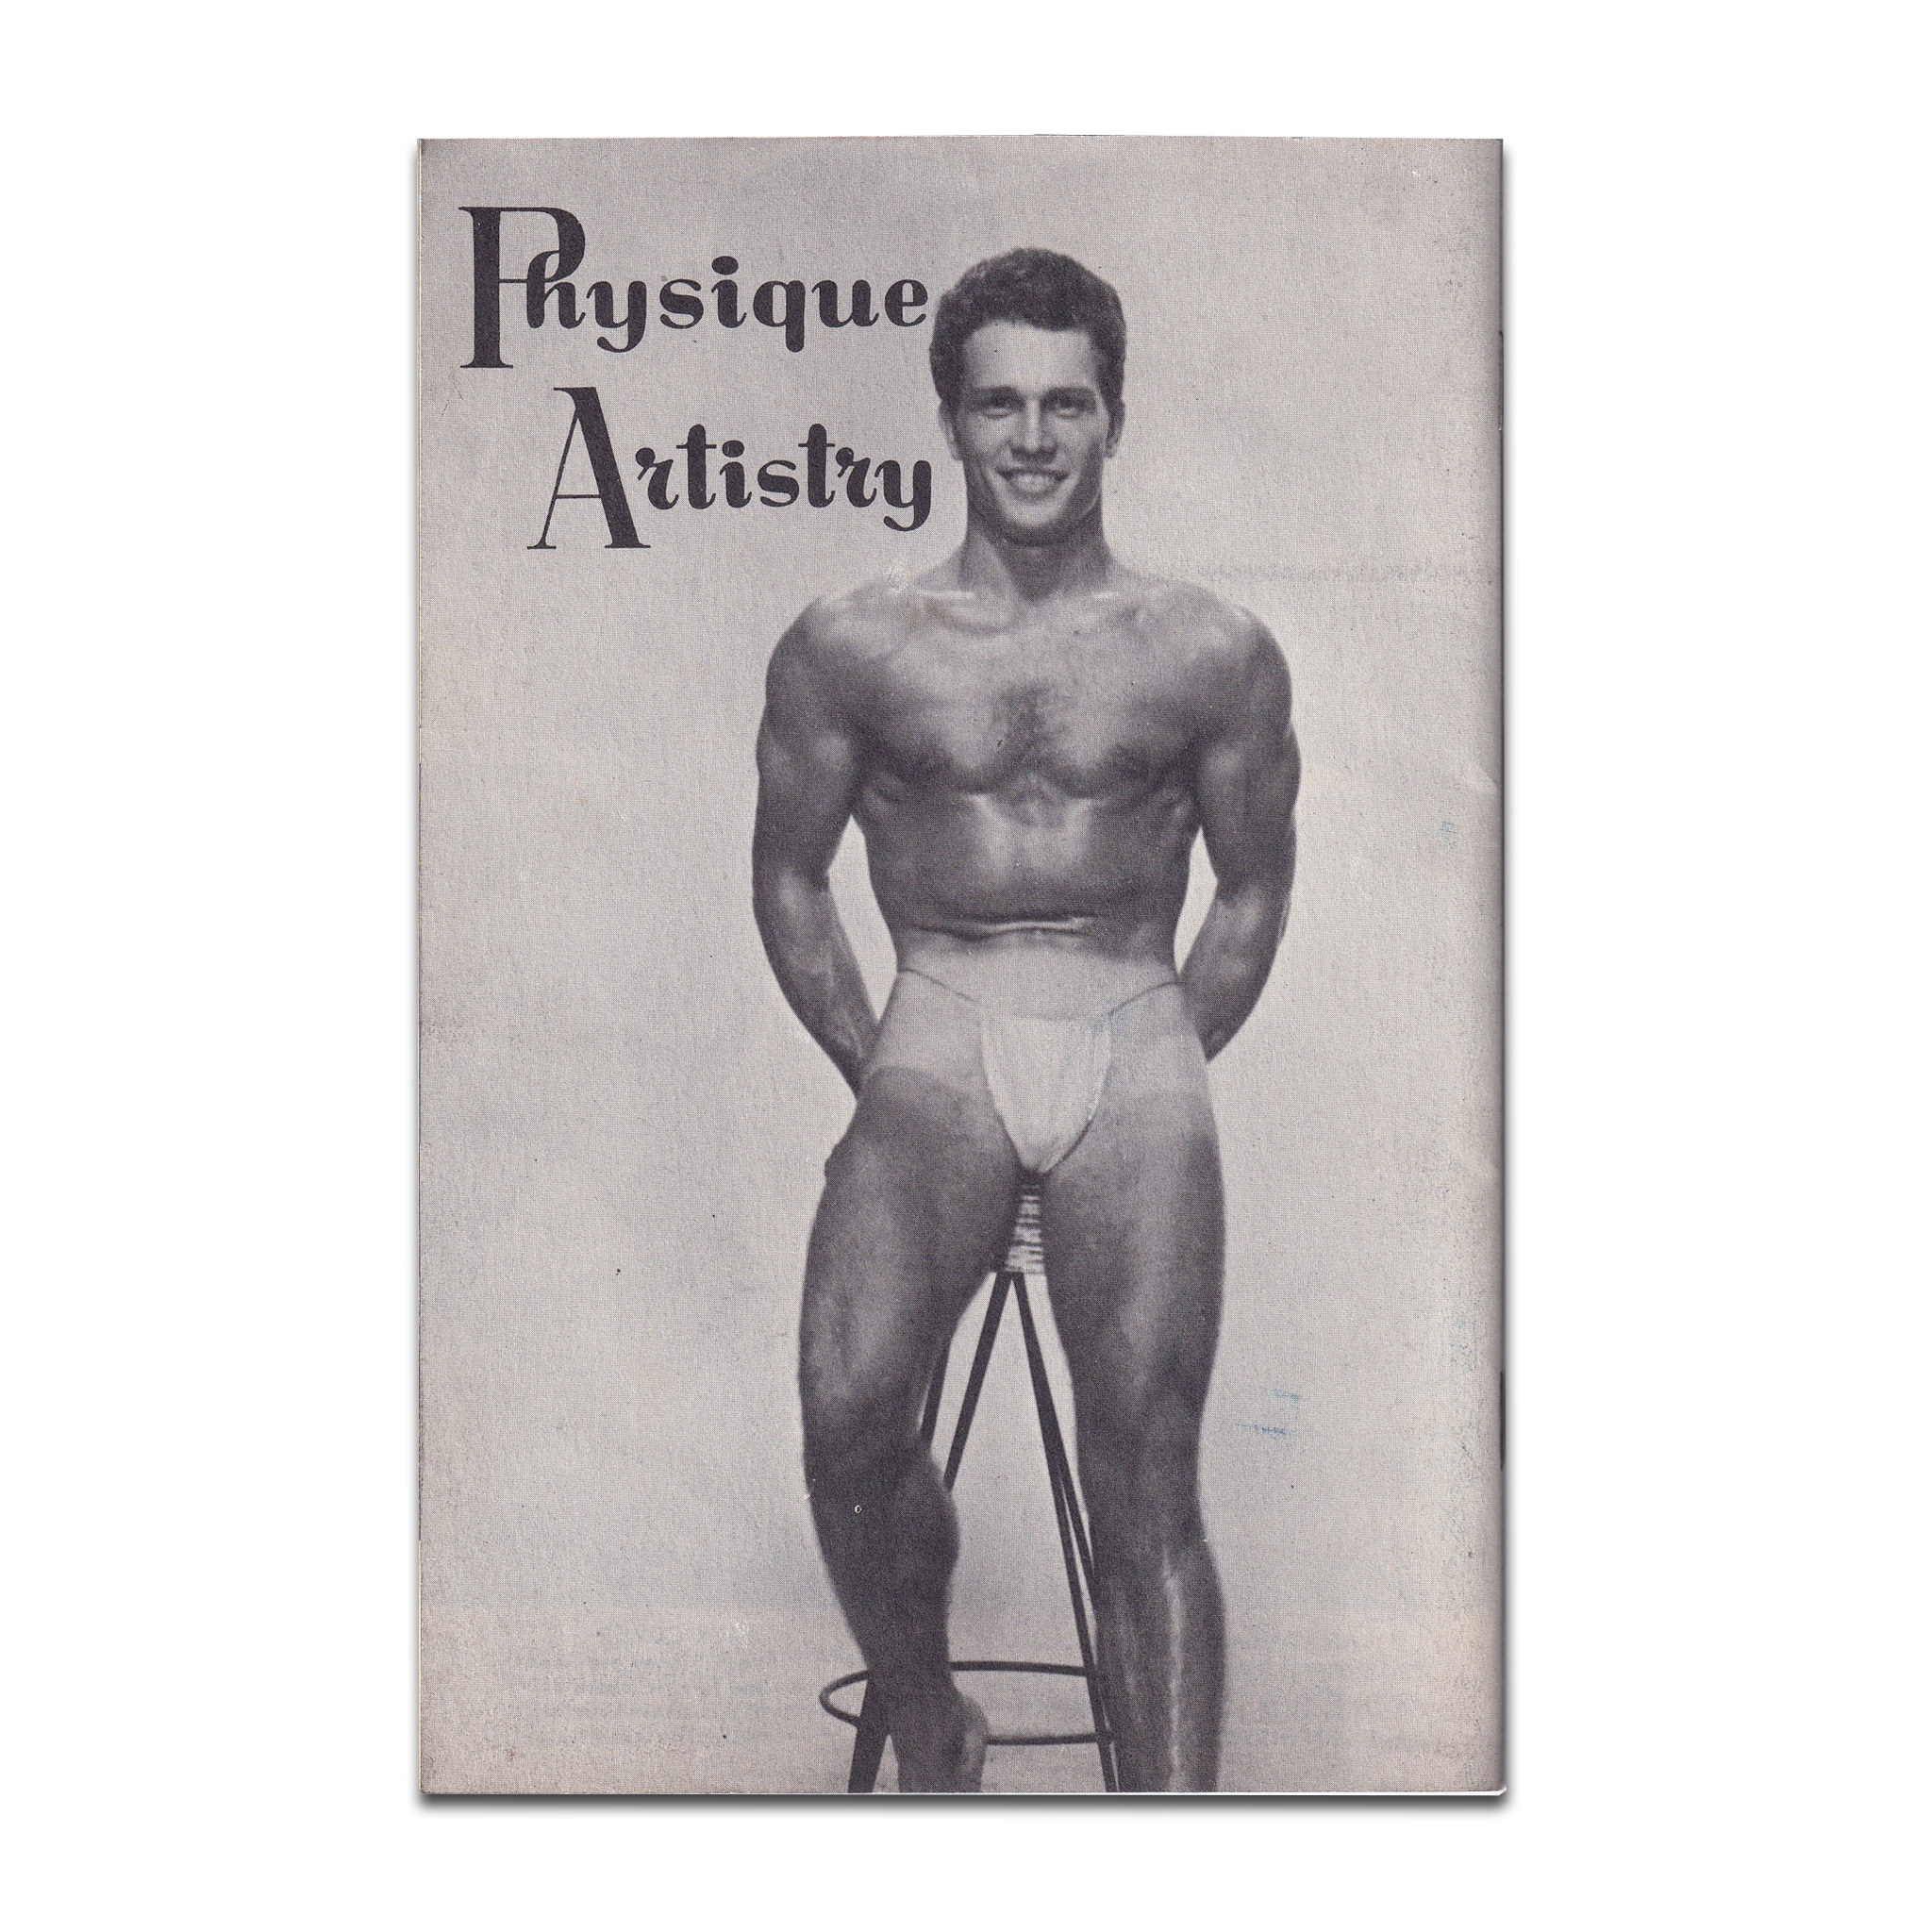 Physique Artistry No. 28 (1962)